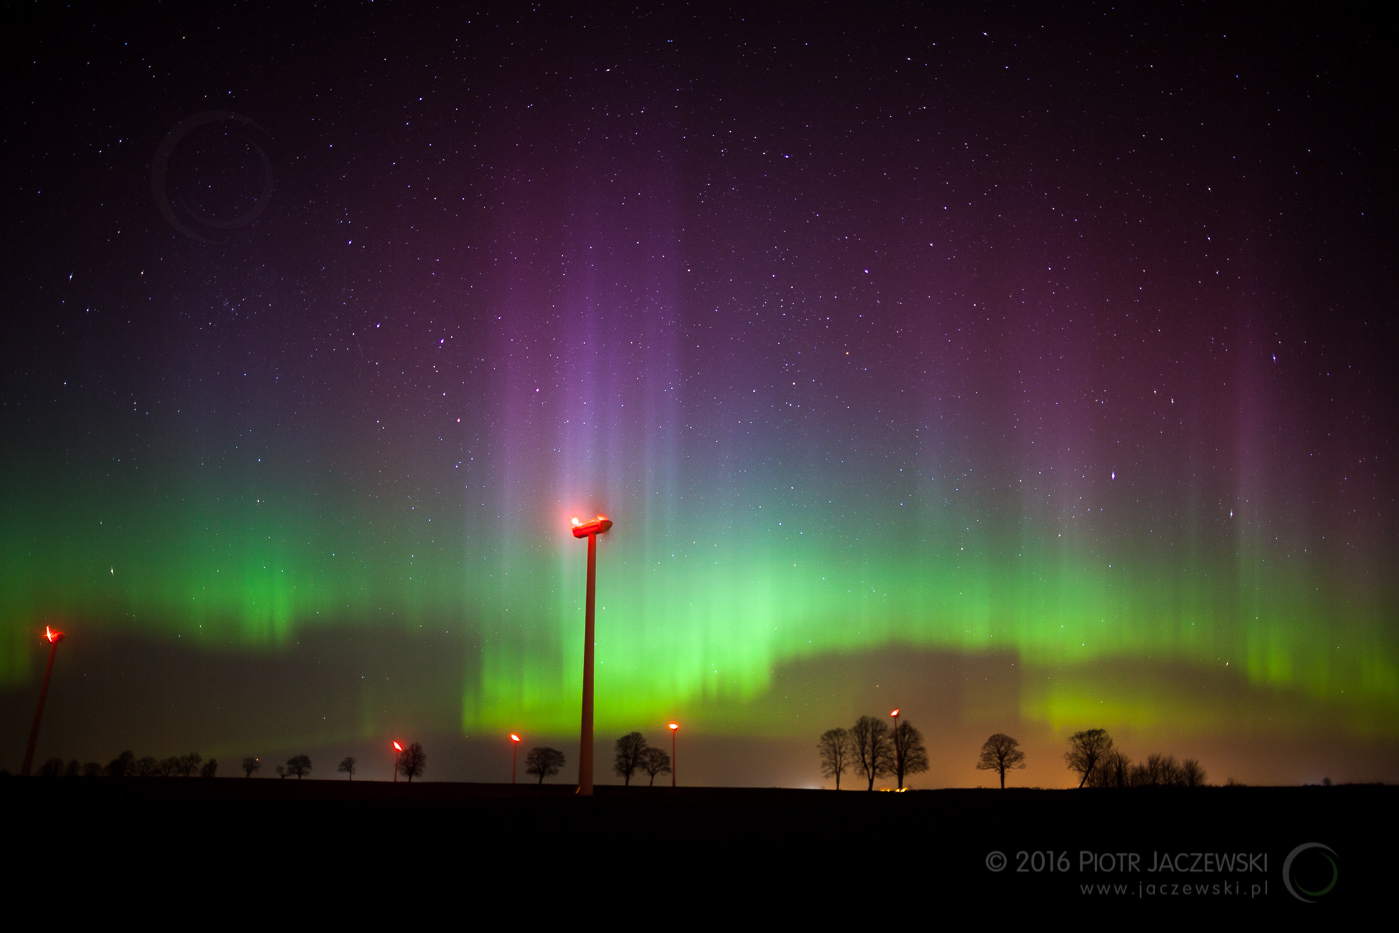 A wind turbine at night with strong Aurora on the sky